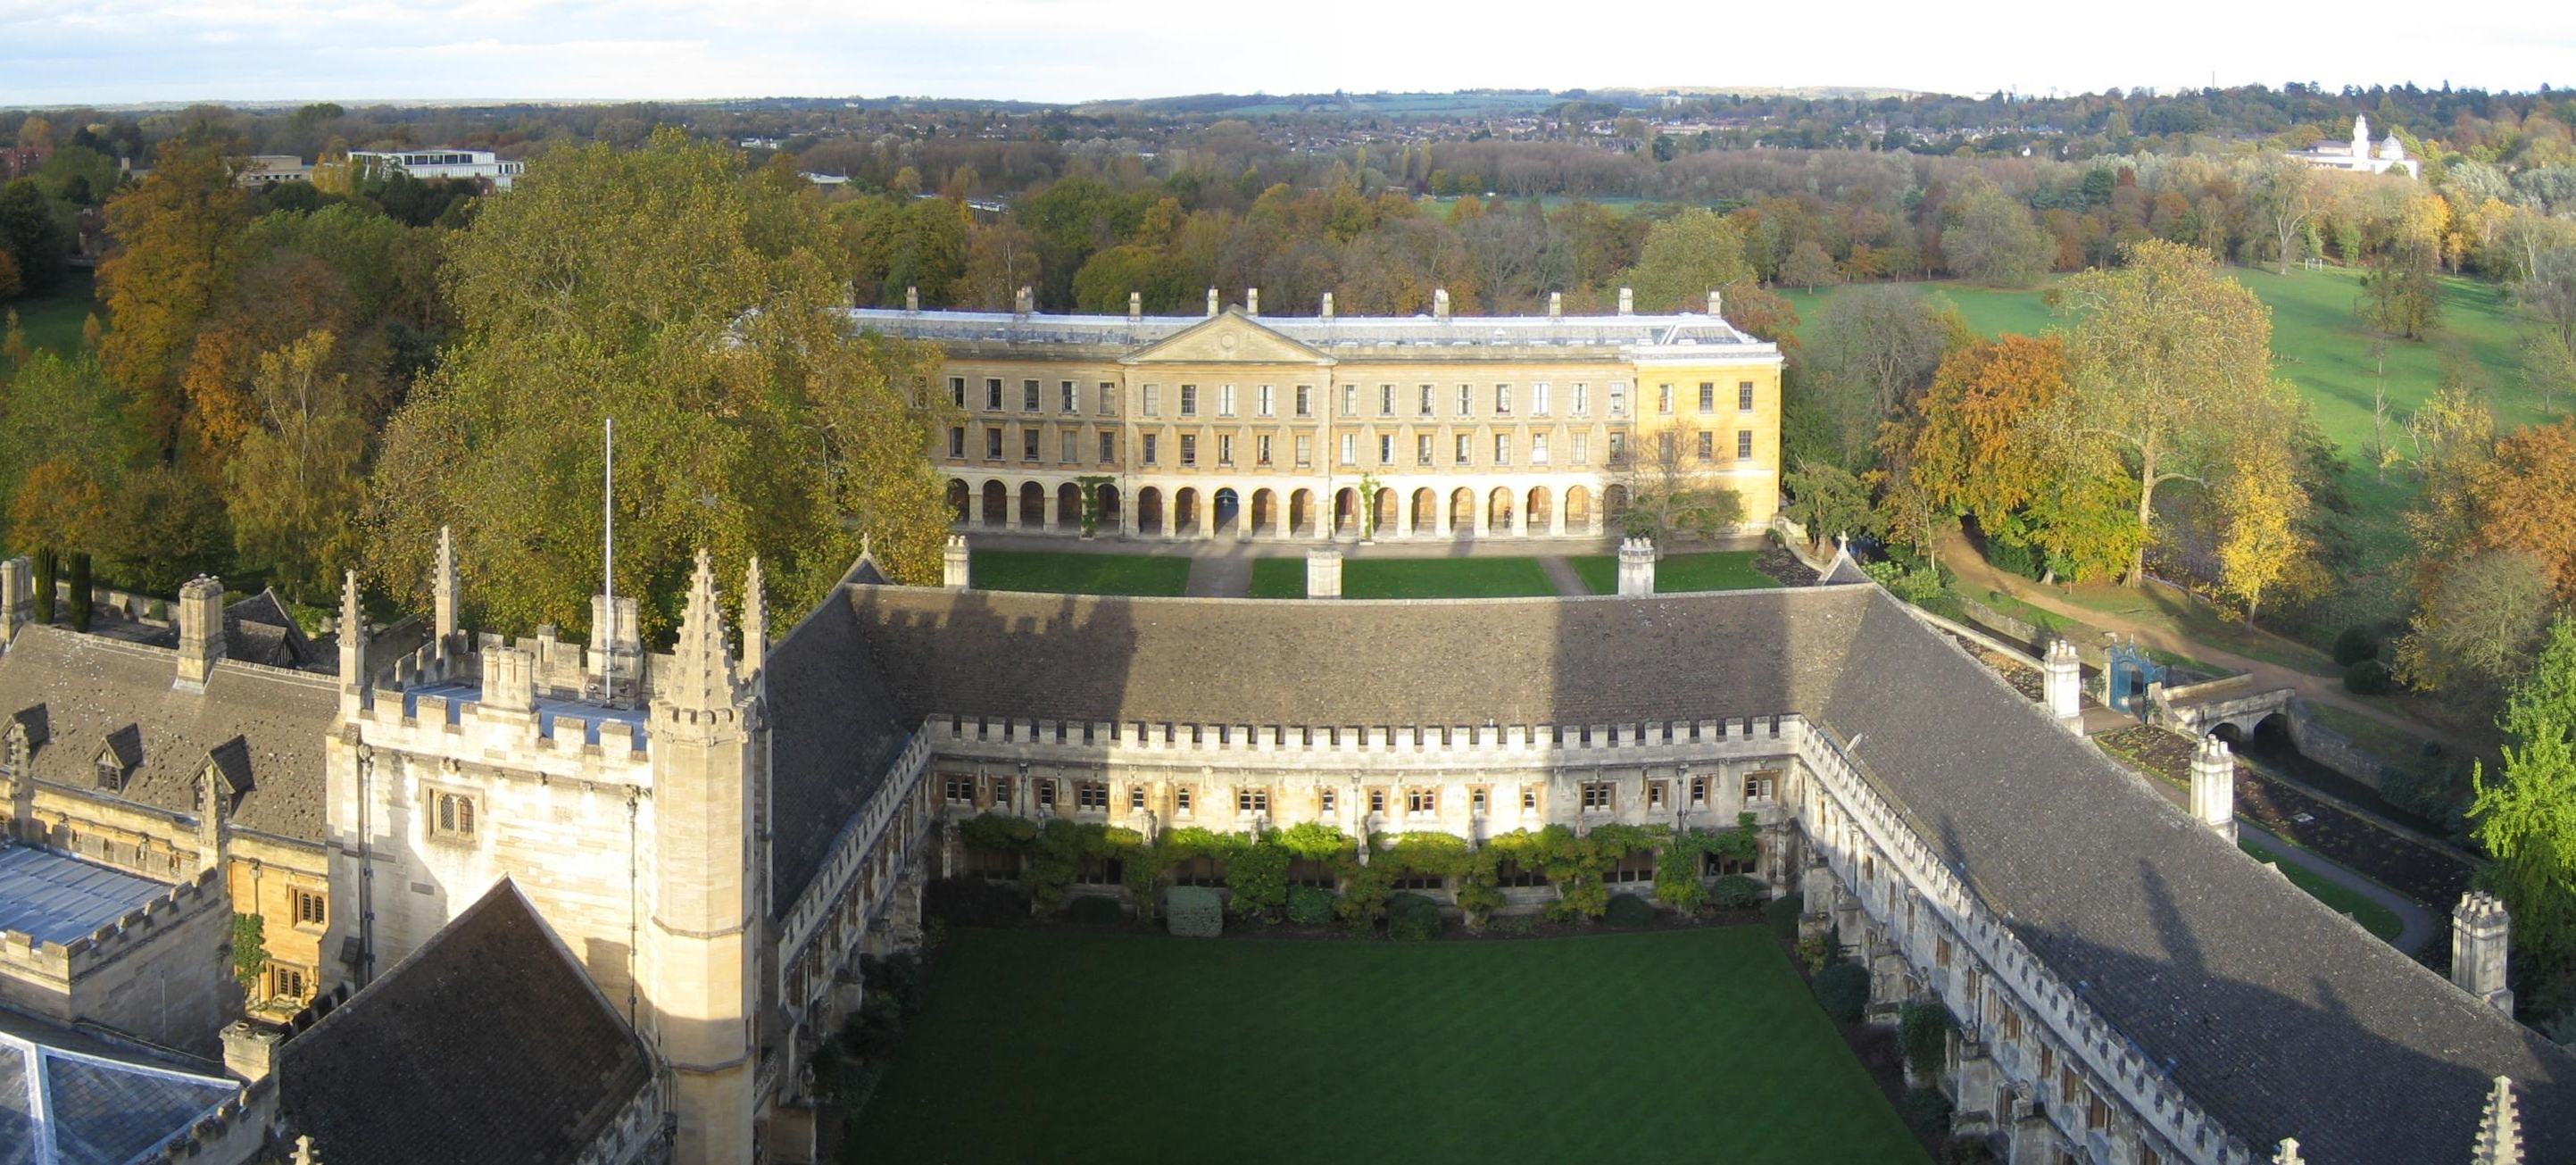 File:Magdalen College Oxford panorama.jpg - Wikimedia Commons